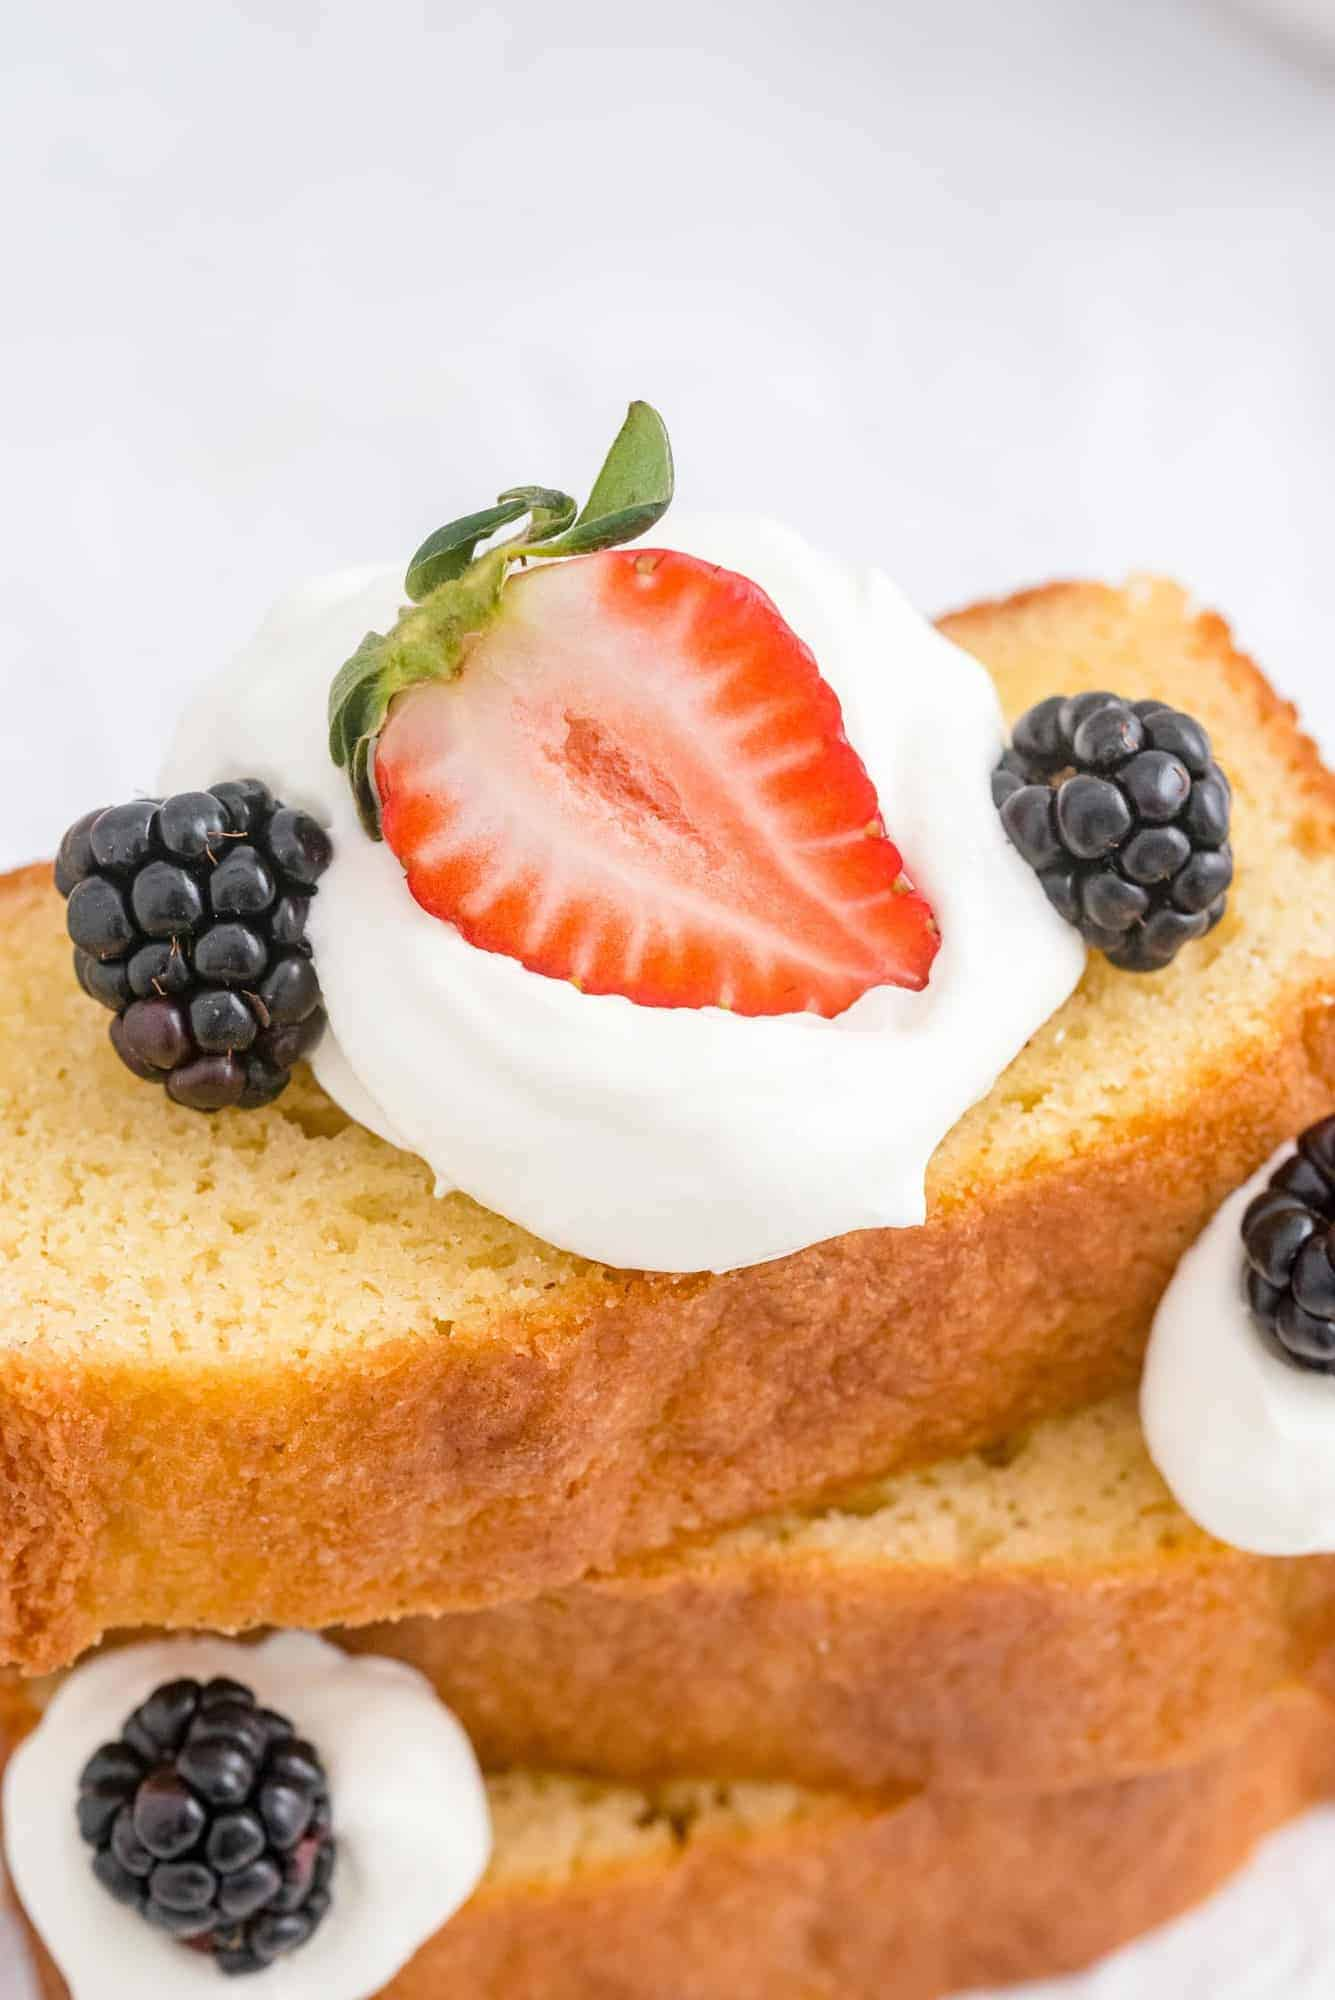 Cake slices with berries and whipped cream.